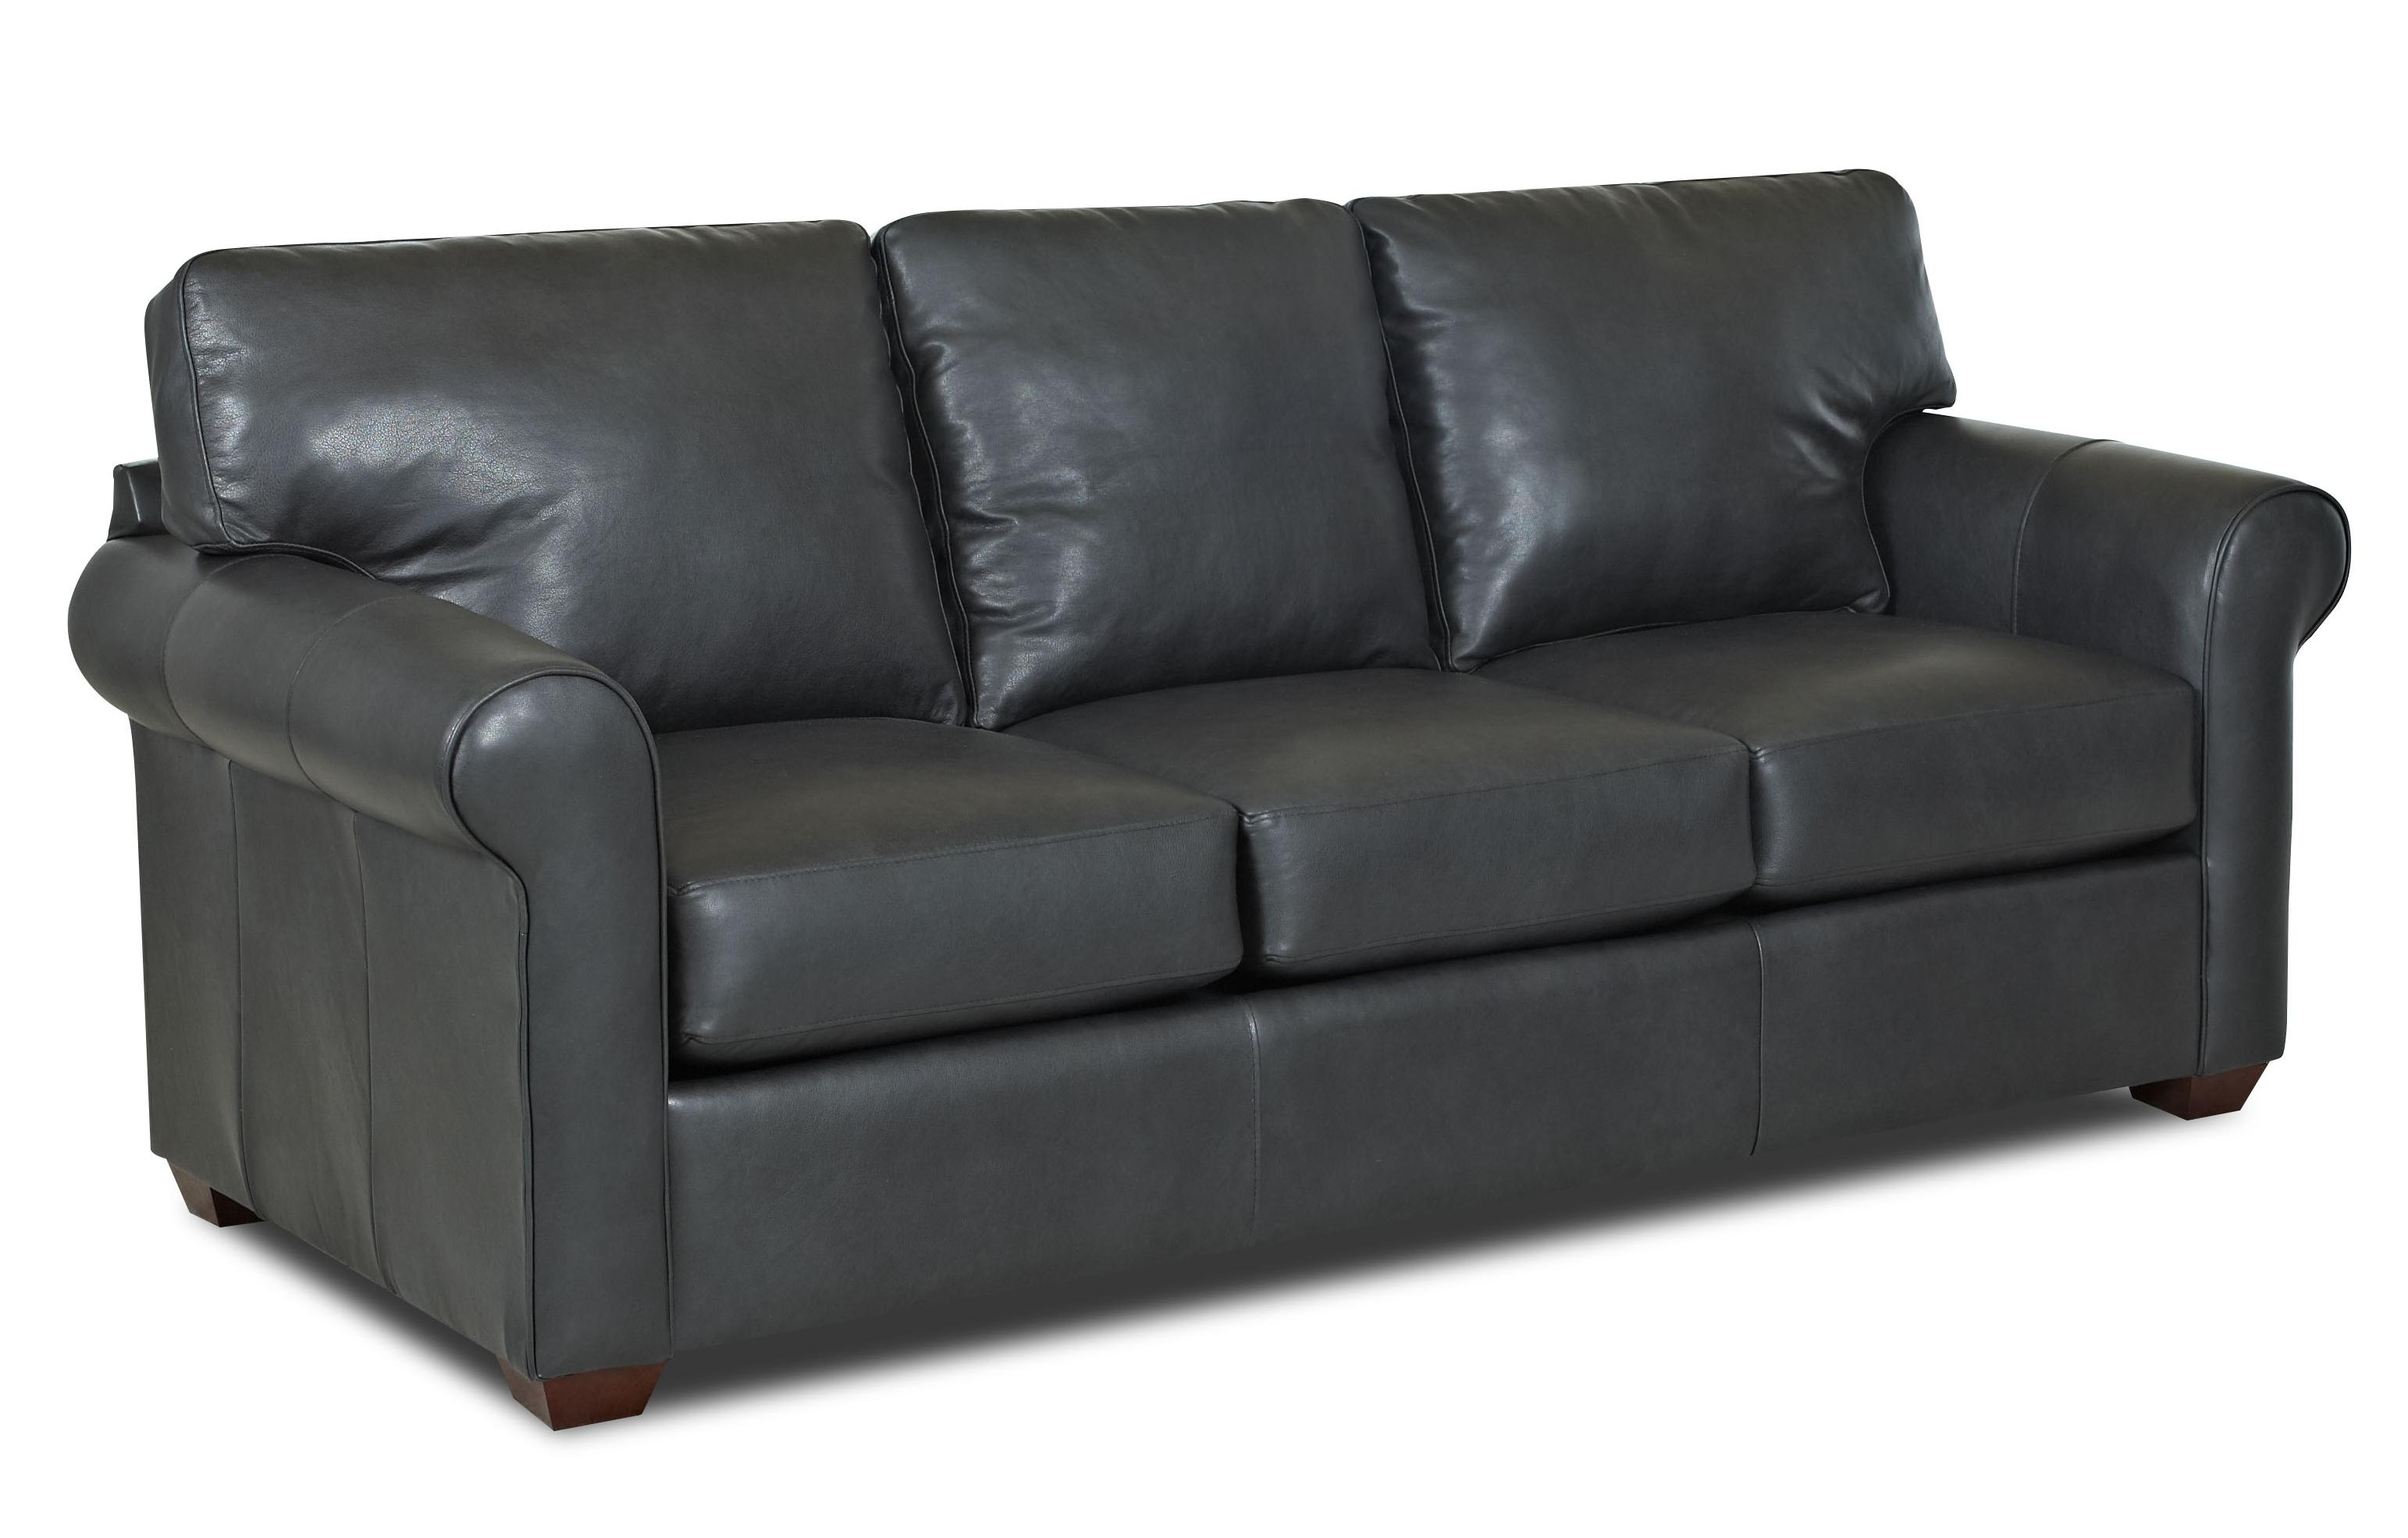 Canoy 3-Seater Stationary Sofa by Klaussner at Johnny Janosik